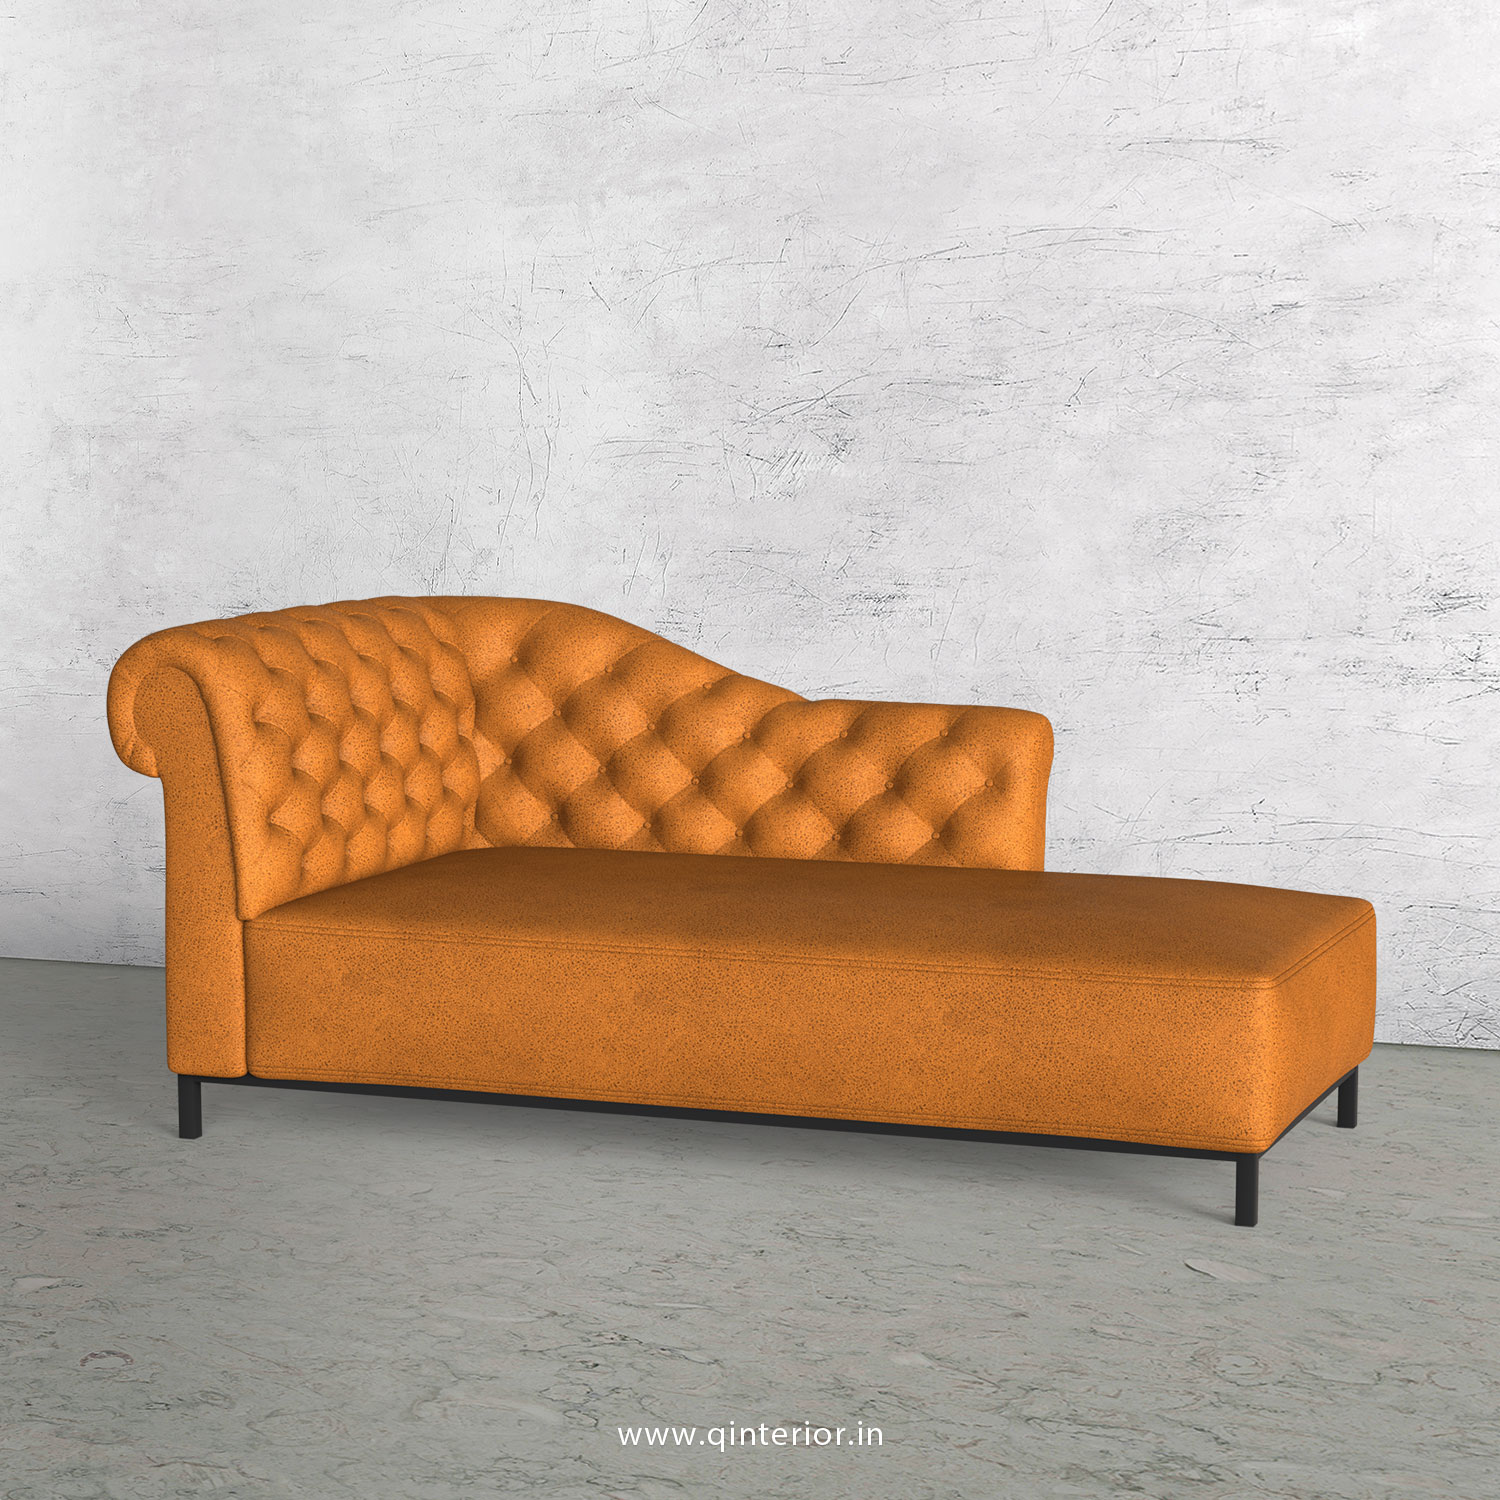 Amour Lounger Chaise in Fab Leather - LCH001 FL14